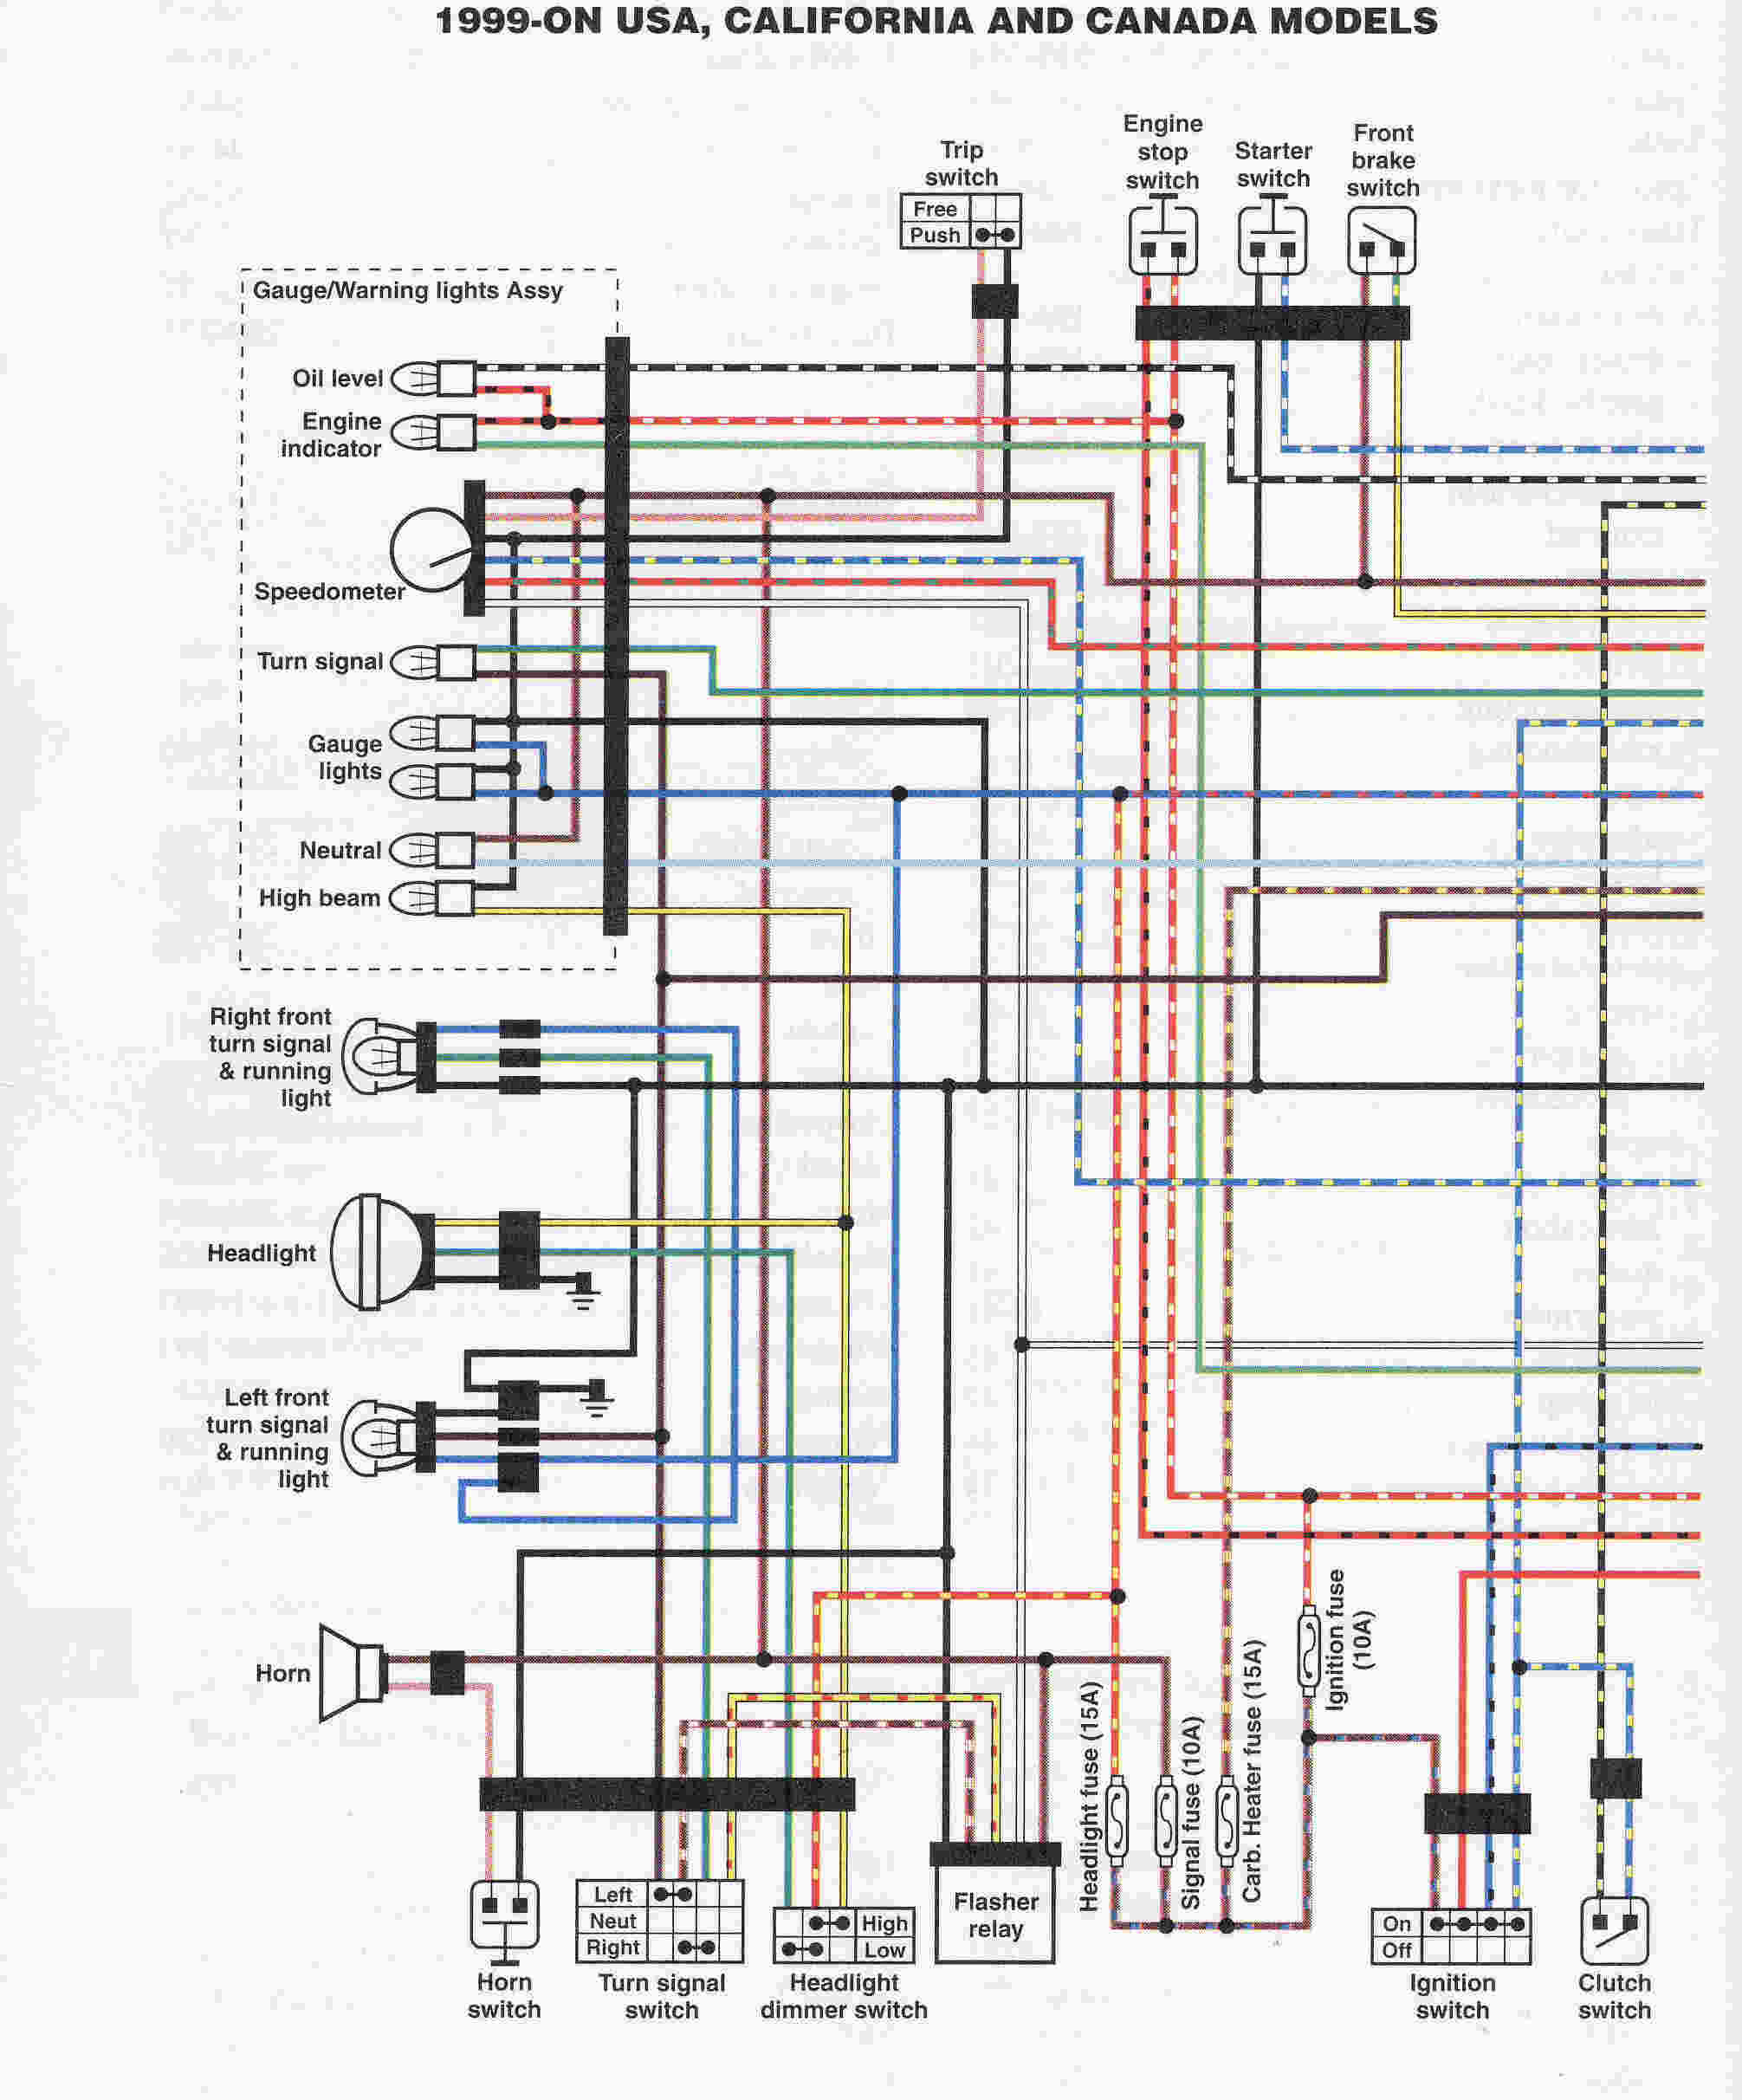 Wiring US 01 yamaha wiring diagrams 1999 wiring diagrams instruction 2004 Chevy Silverado Wiring Diagram at alyssarenee.co